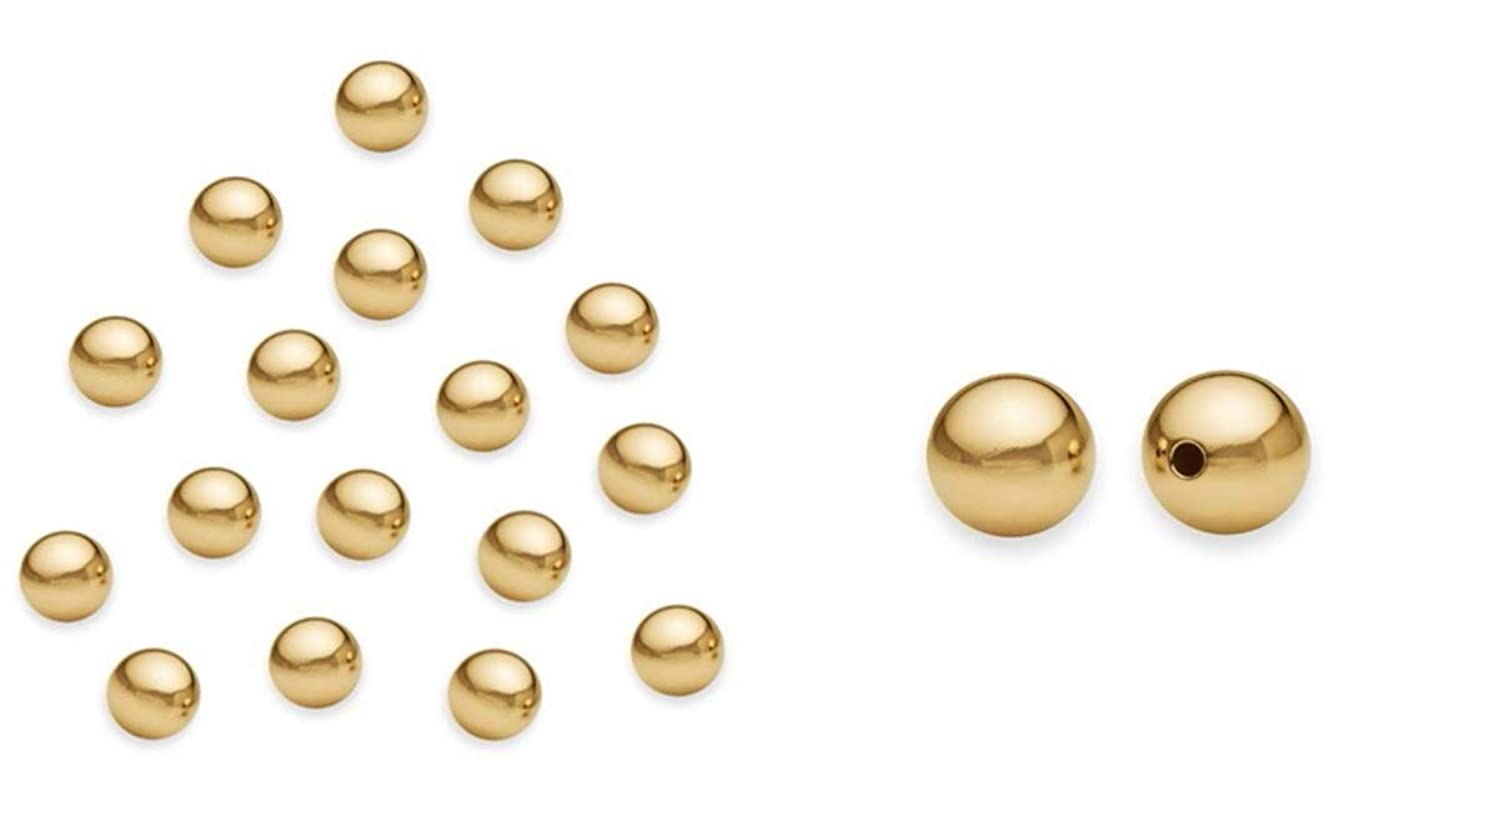 30pcs 14k Gold on Sterling Silver 6mm Seamless Smooth Loose Round Spacer Beads for Jewelry Craft Making Findings SS342